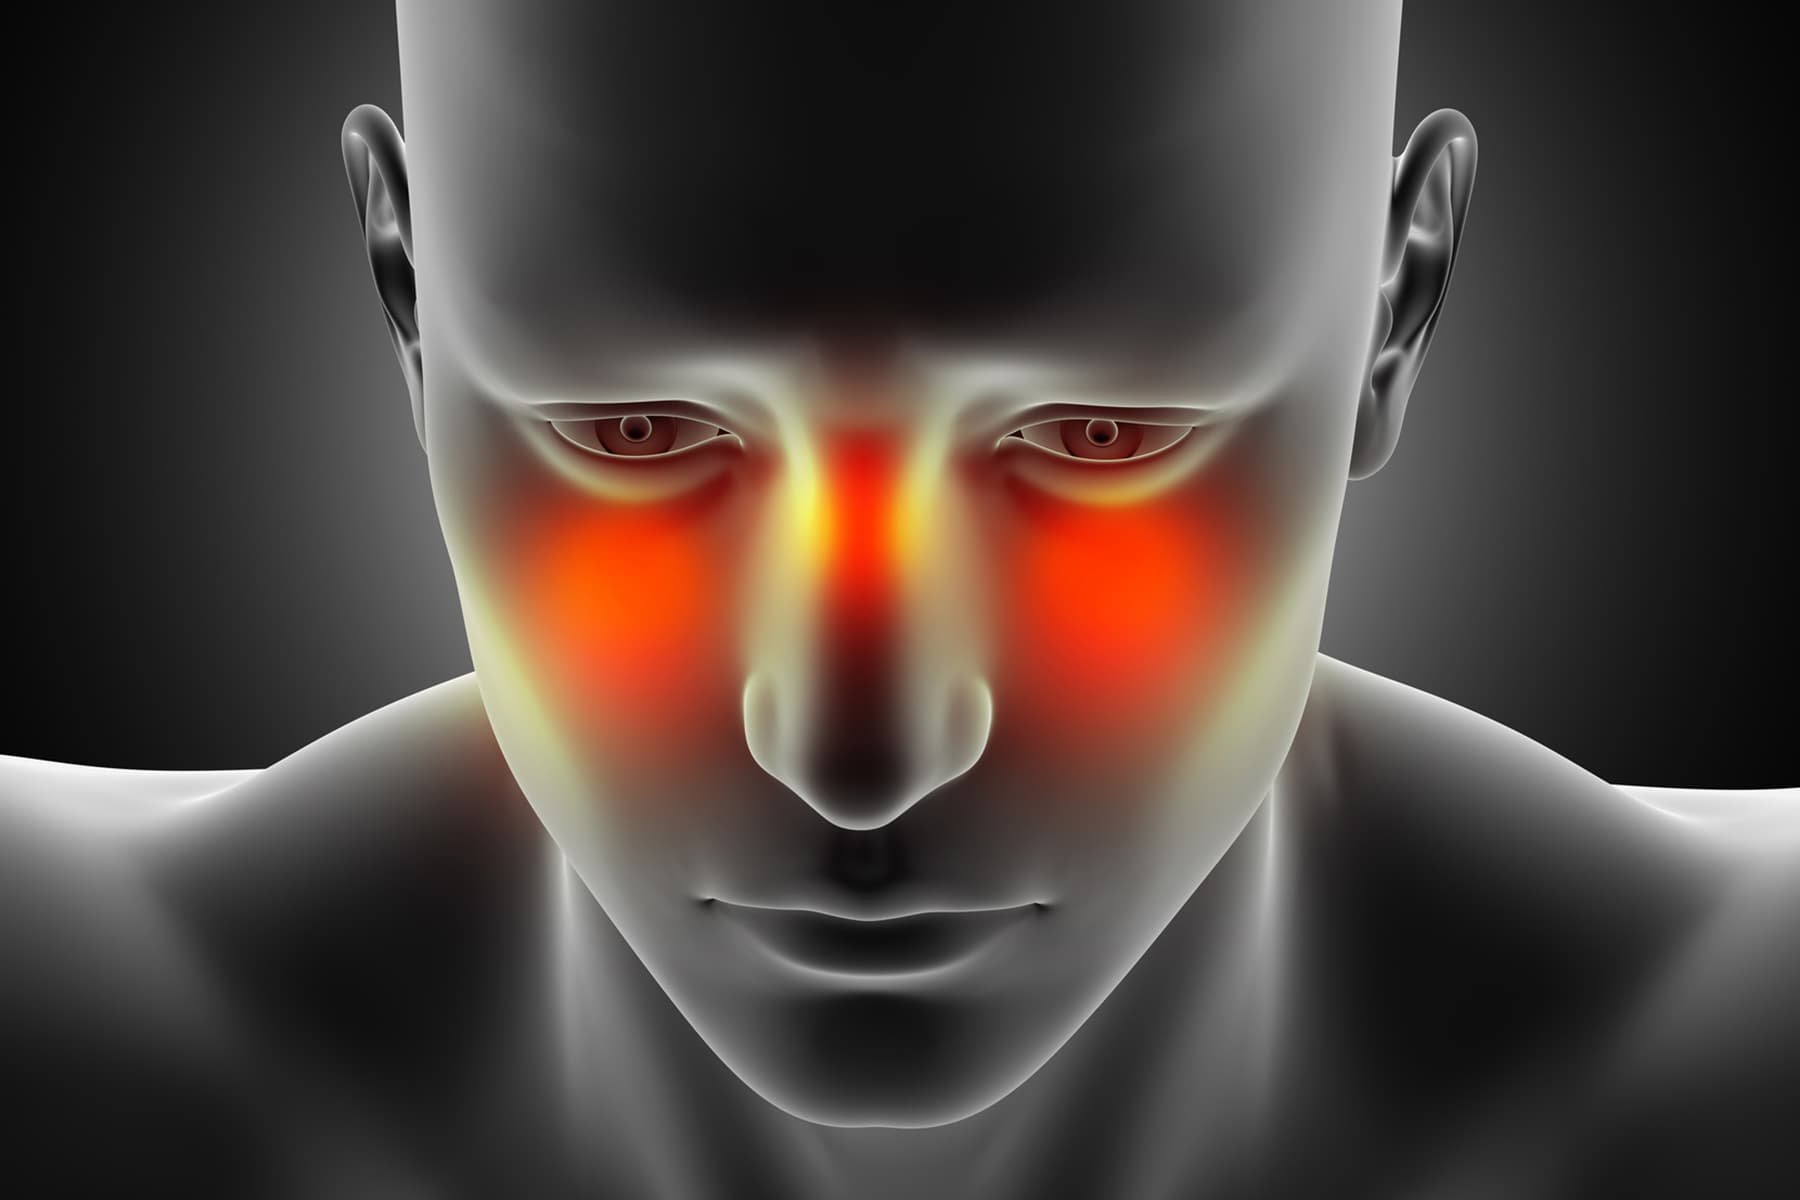 The facial pain caused by cold fluid question interesting